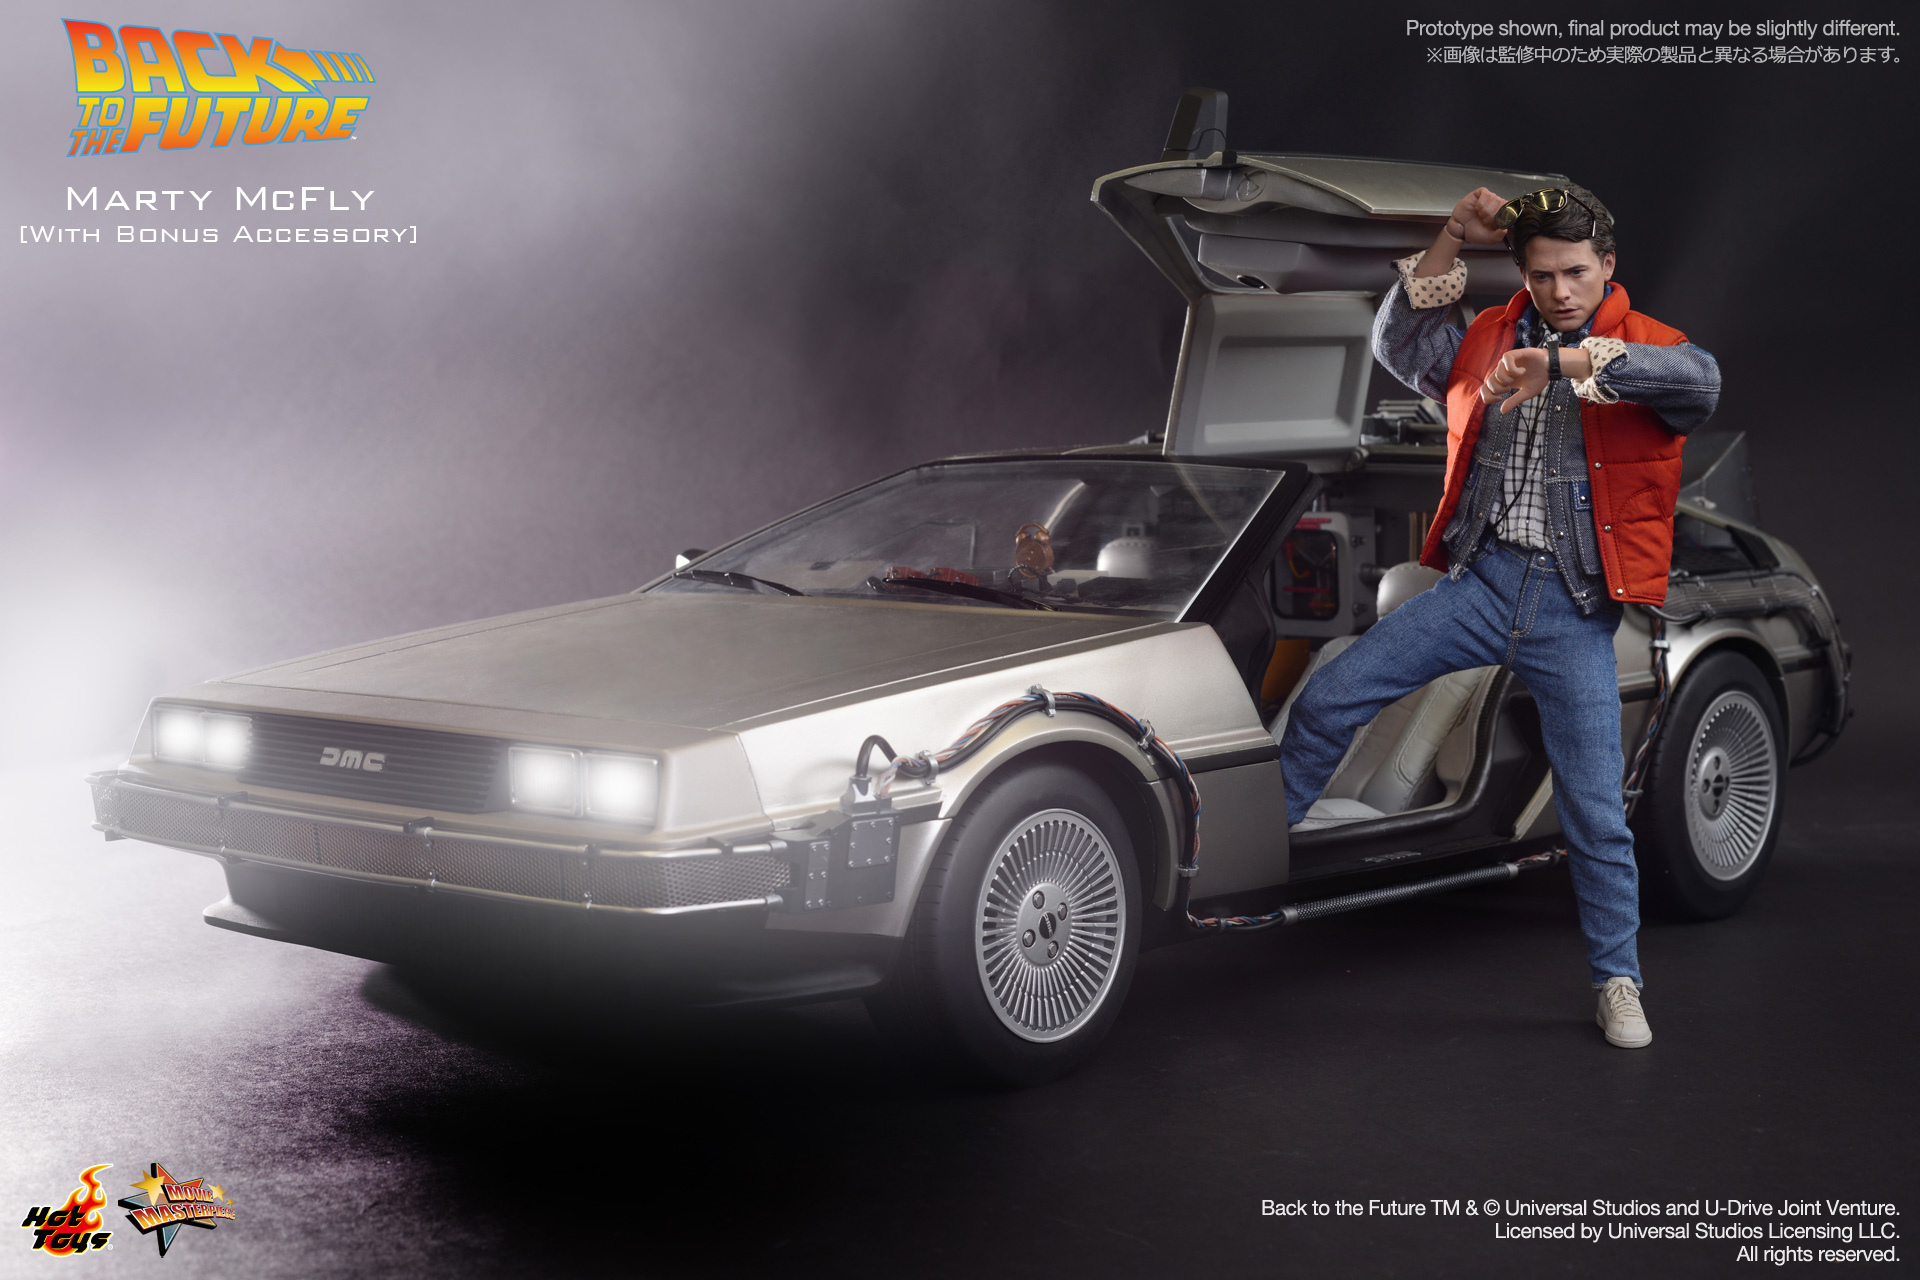 Marty mcfly future date in Brisbane